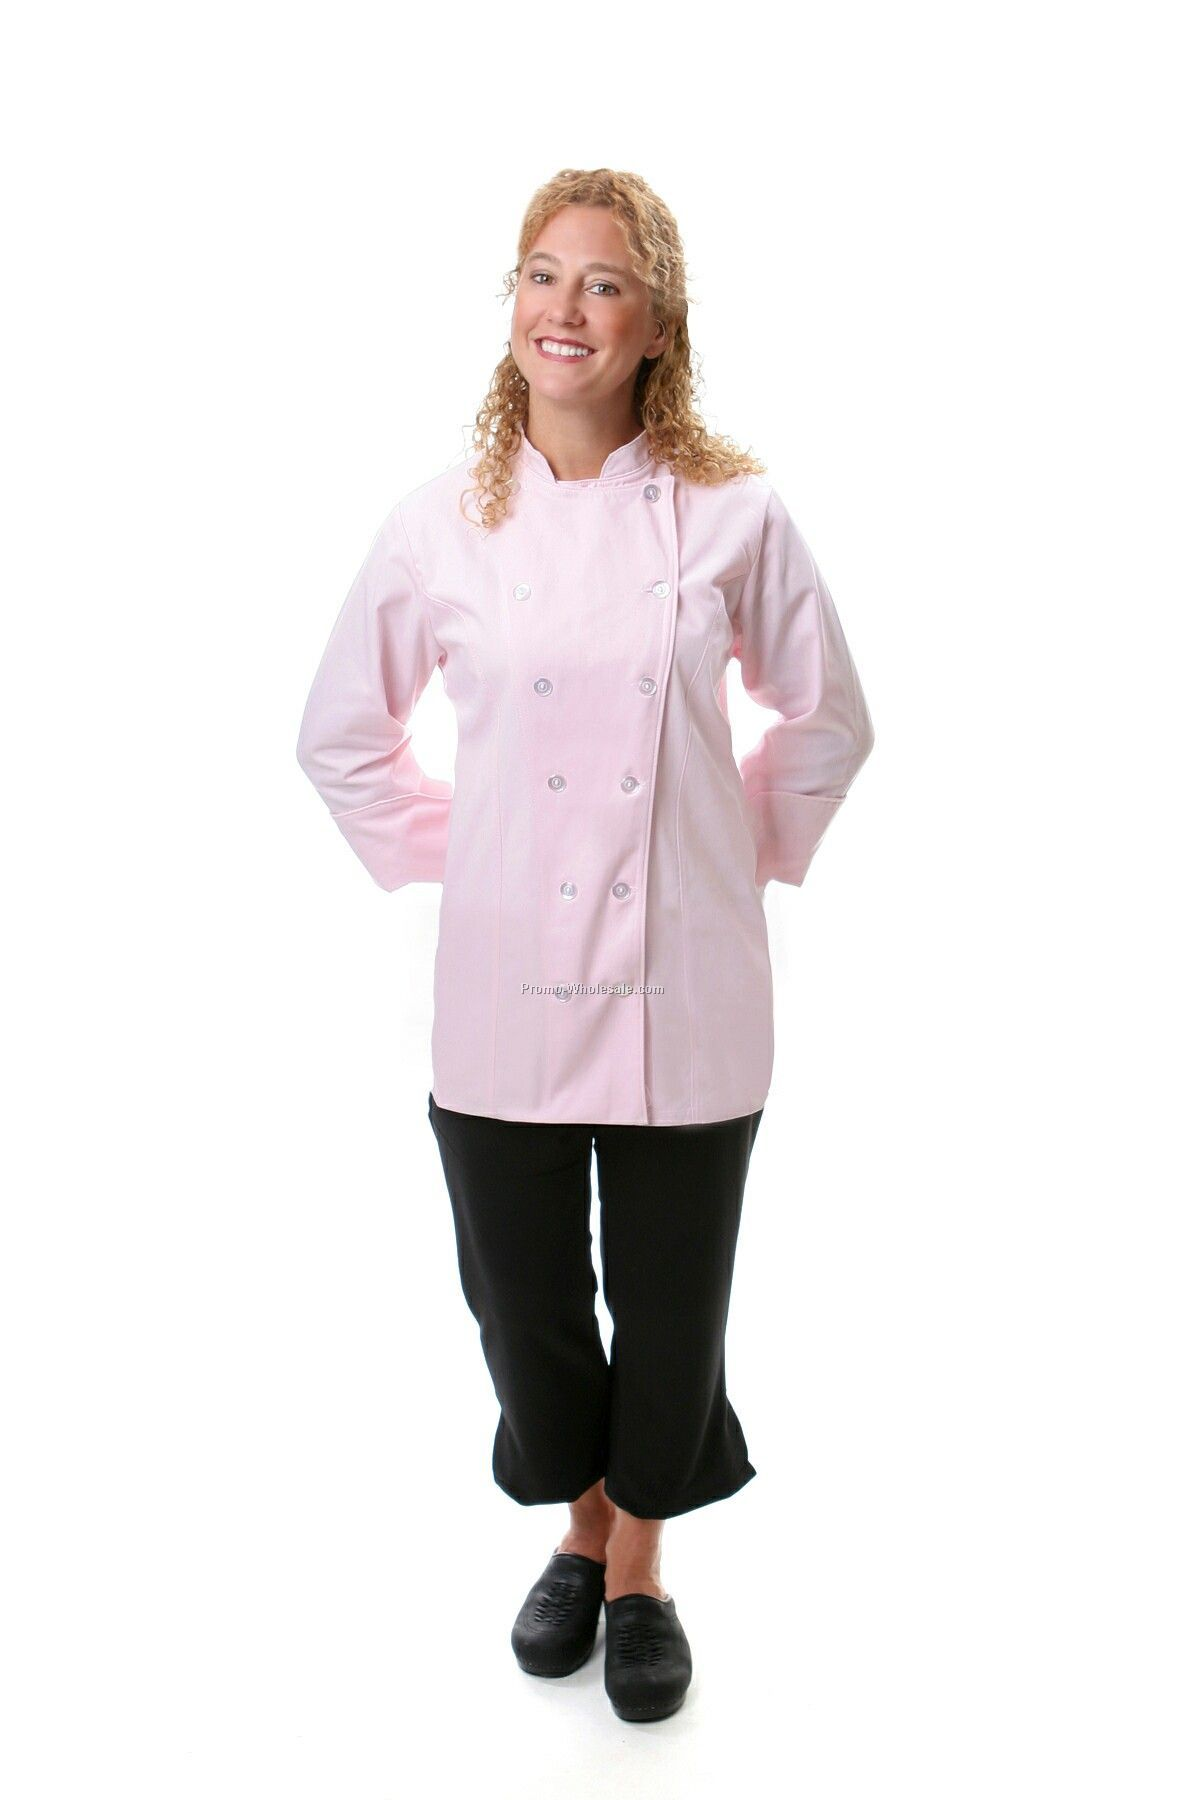 Ladies' Fitted Chef Coat - Pink (3x-large)